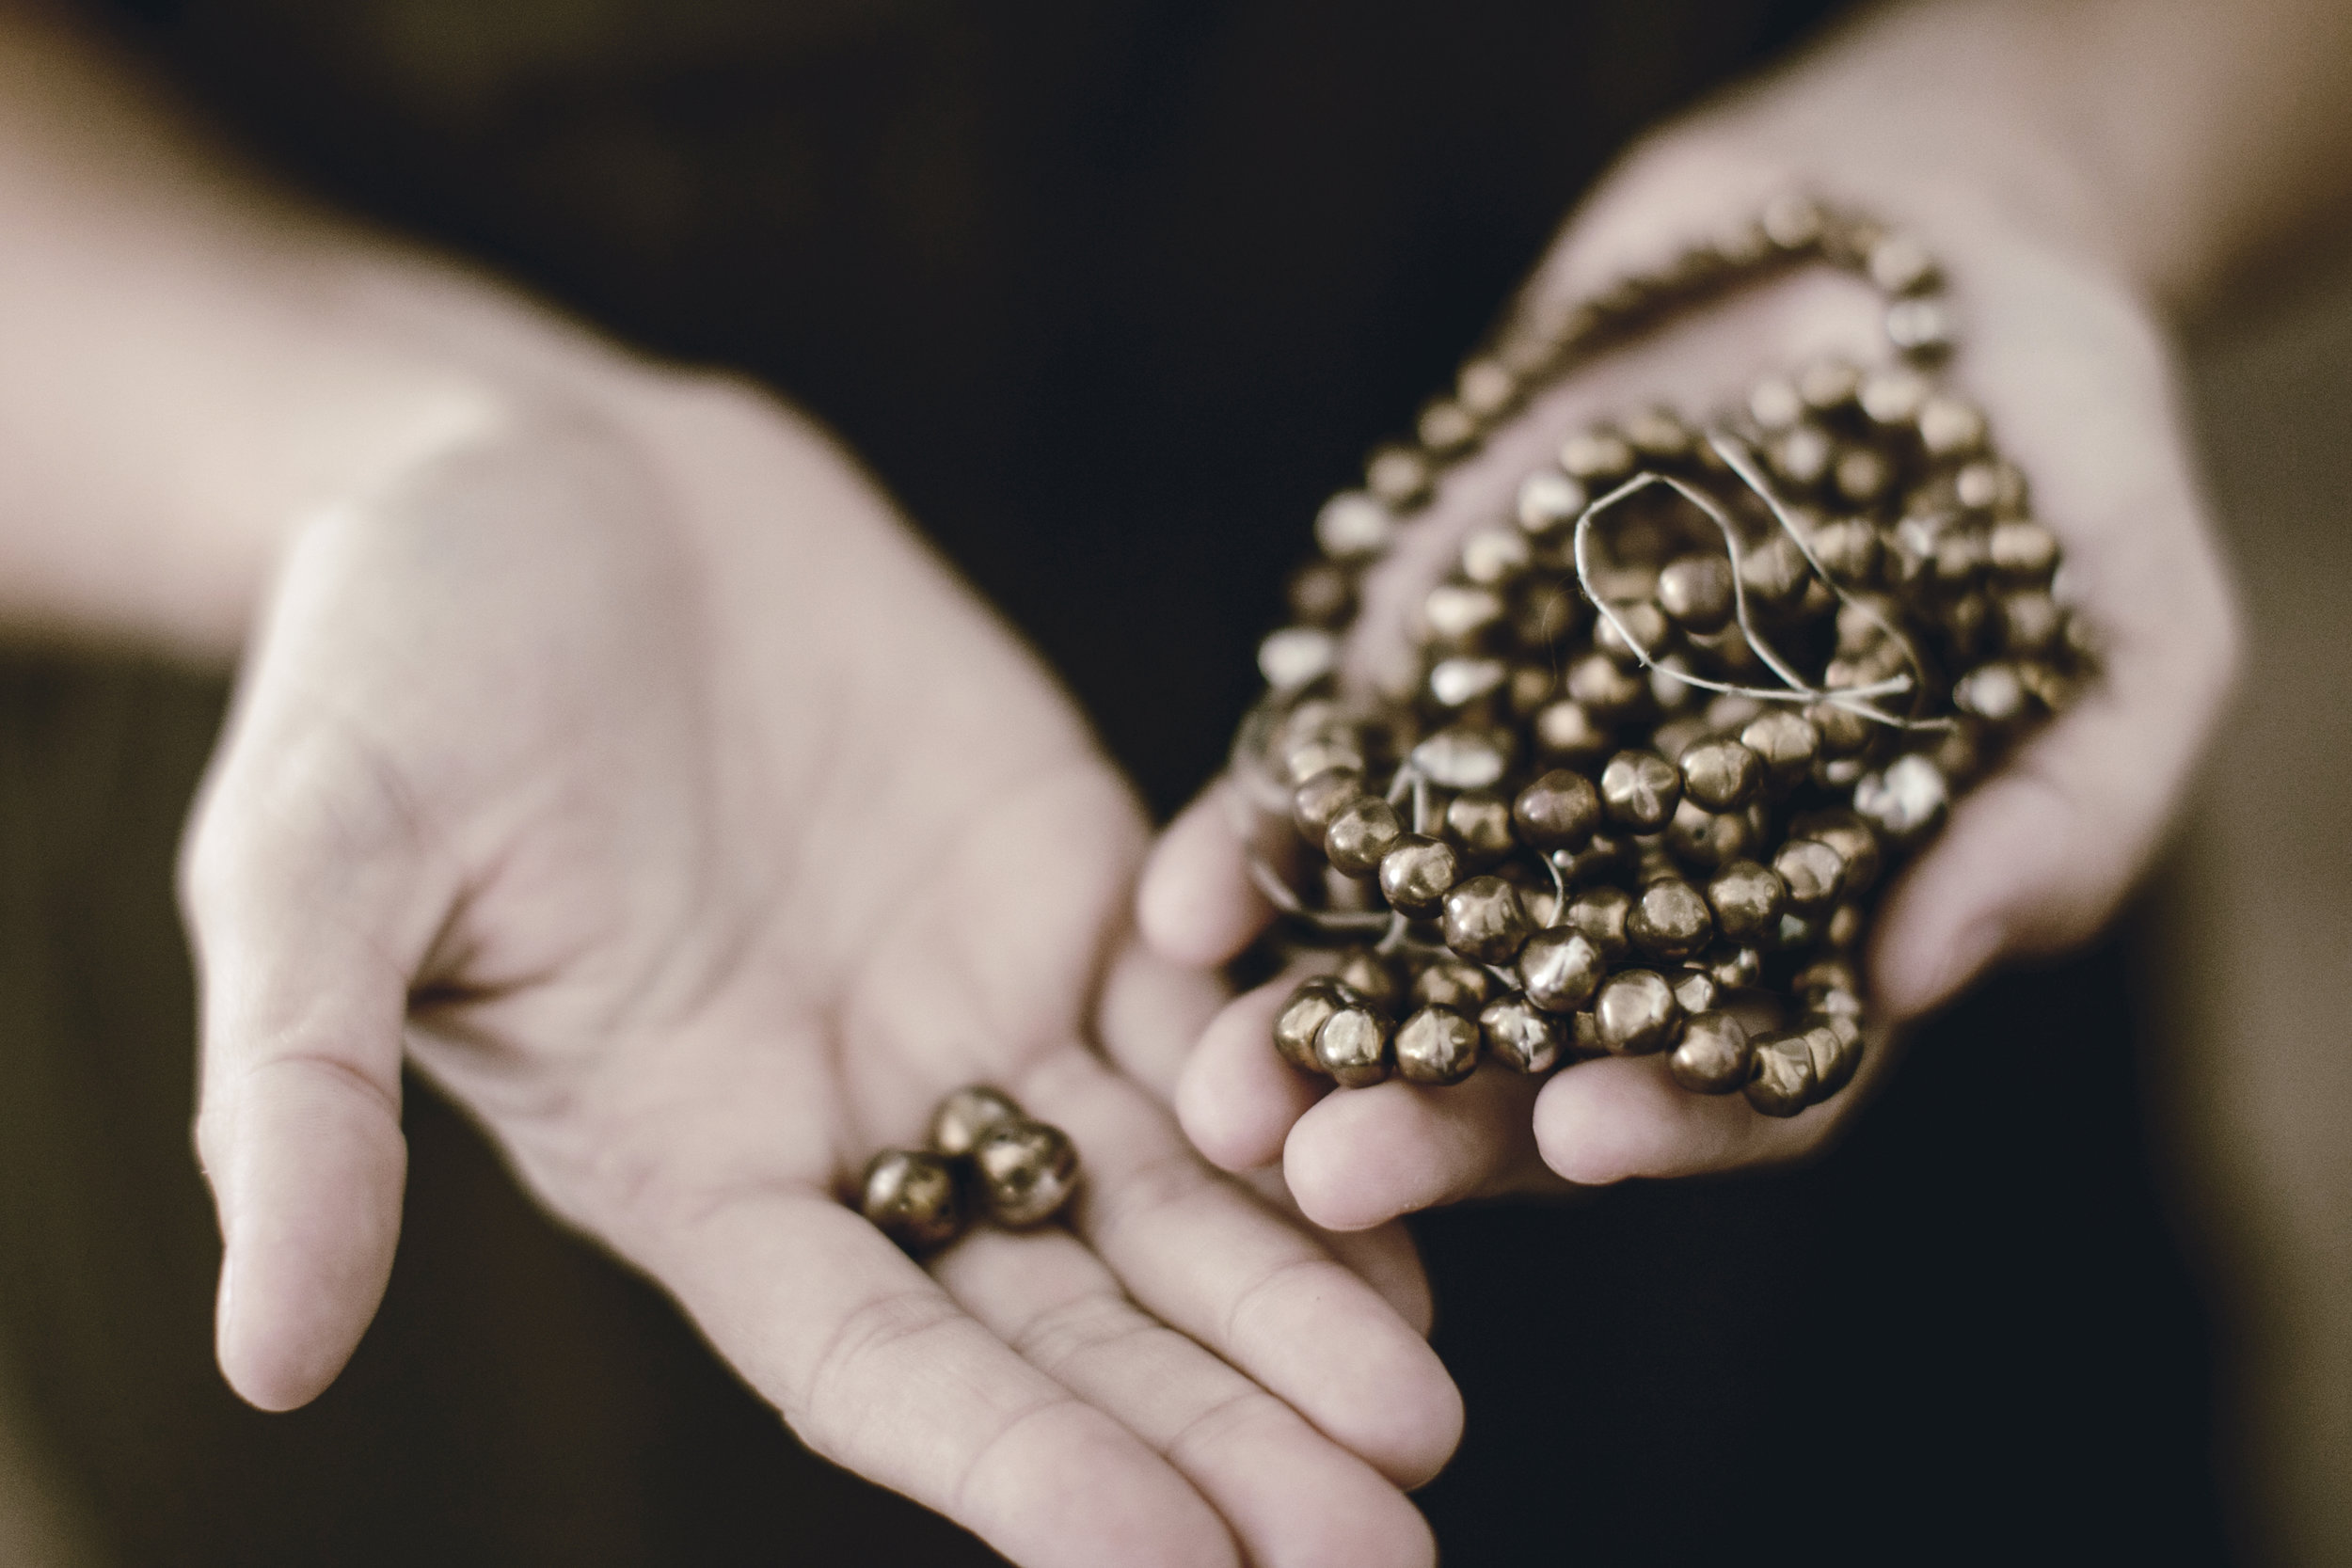 vintage brass beads from family heirloom jewelry / heirloomed